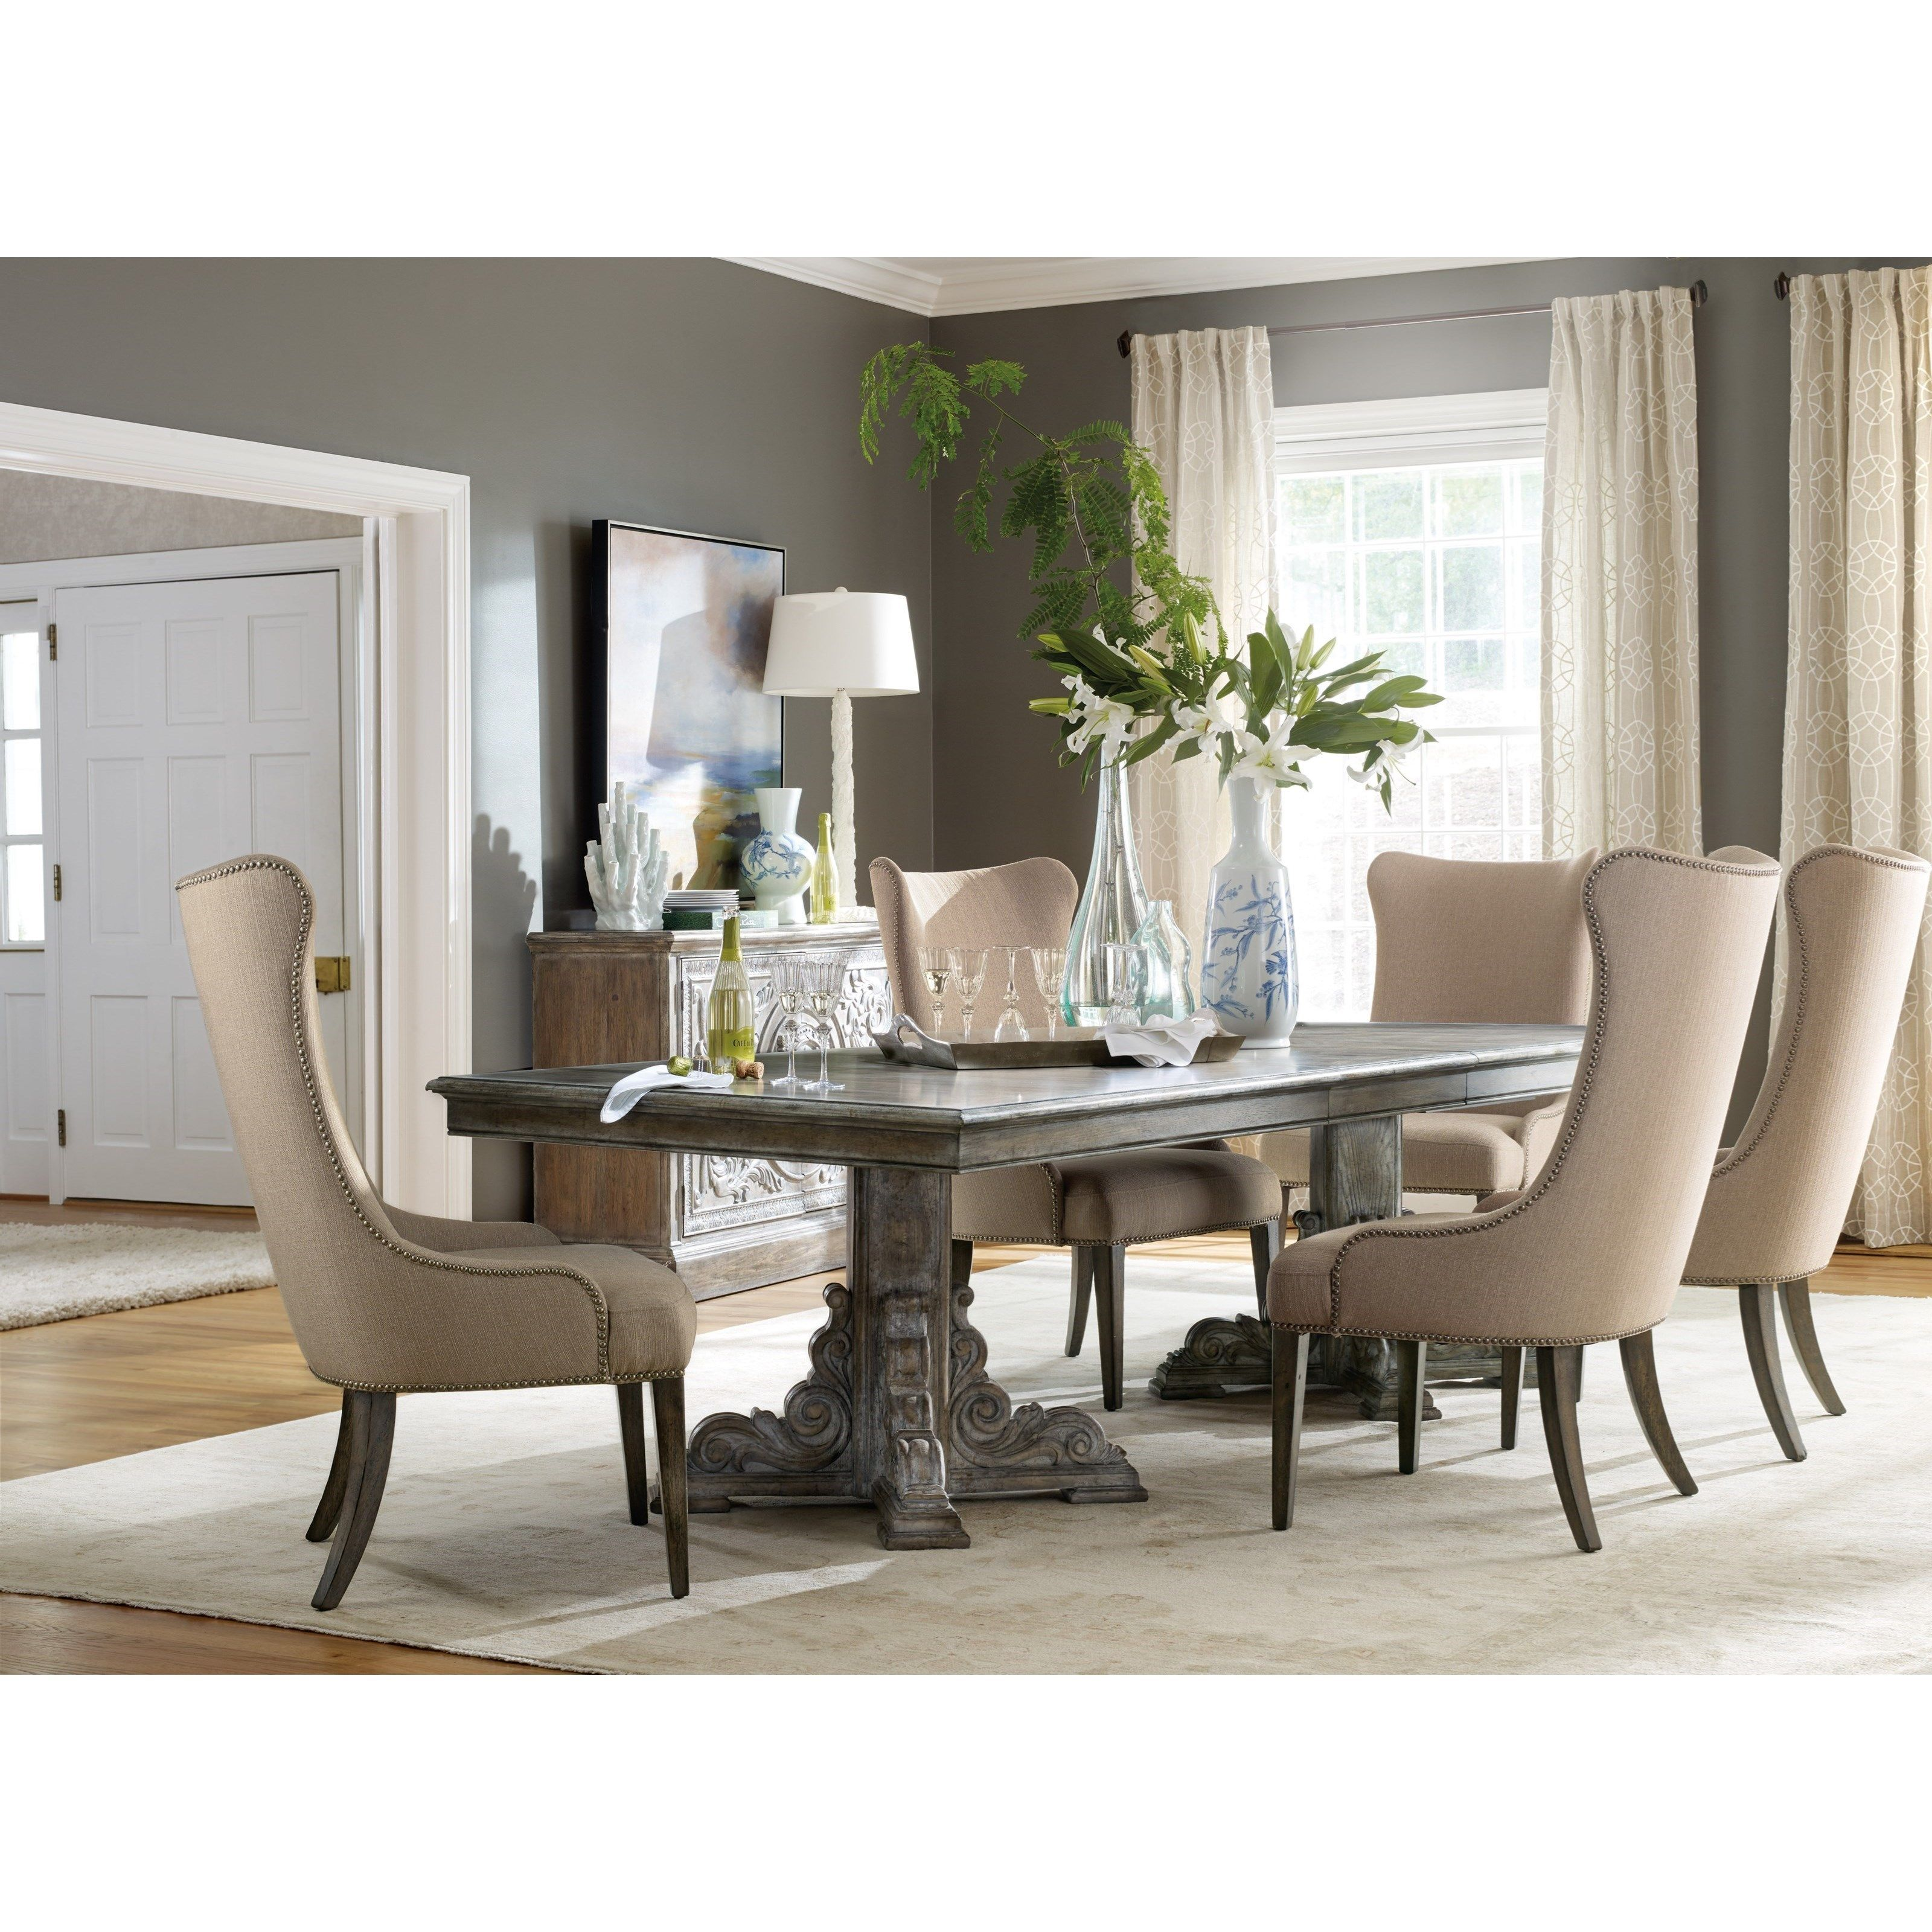 Hamilton Home True Vintage Rectangle Dining Table With Leaves